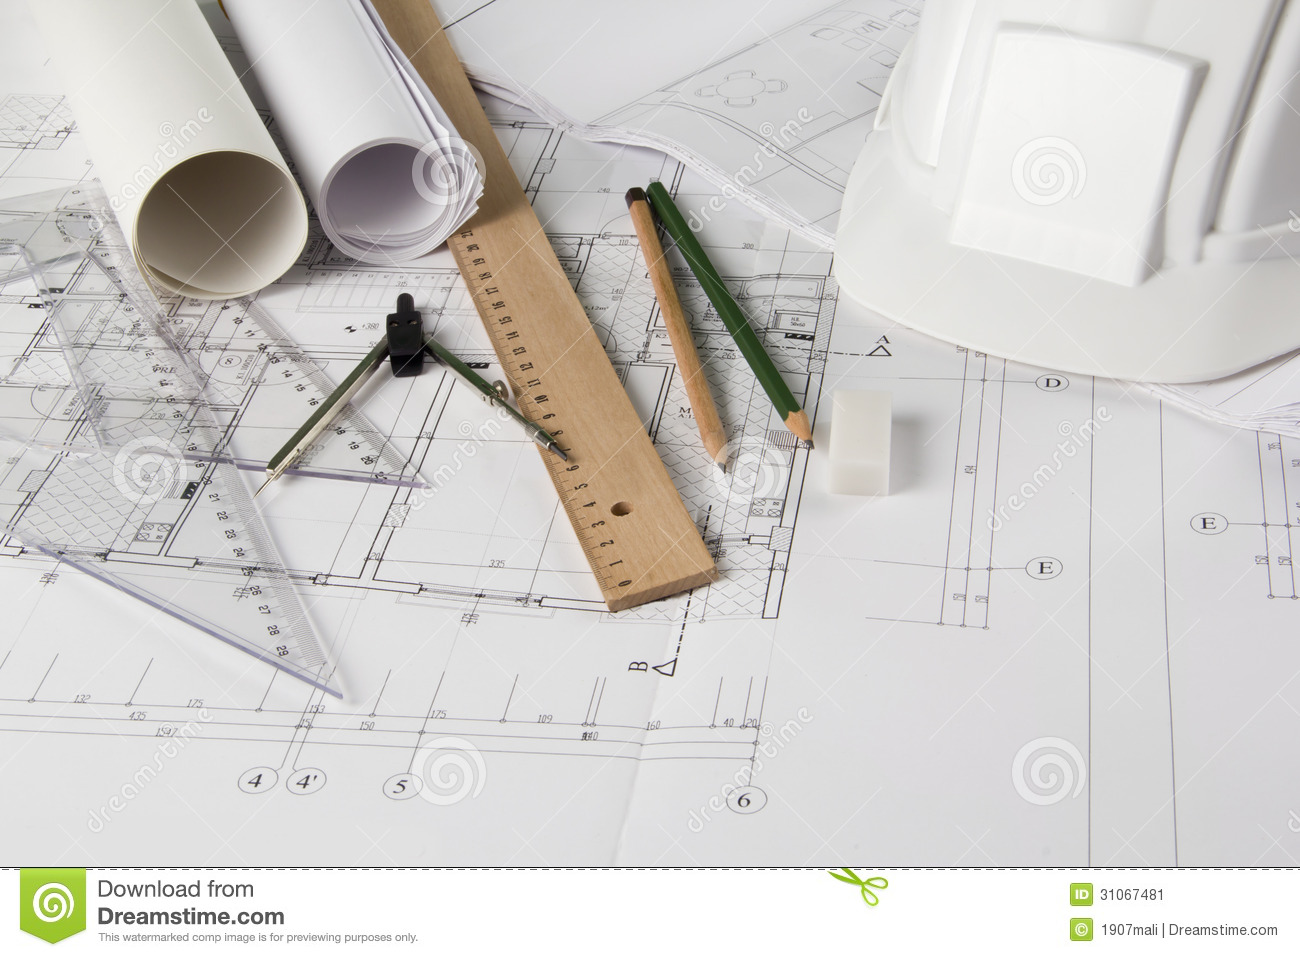 Architectural blueprints and drawing tools stock image for Online architecture design tool